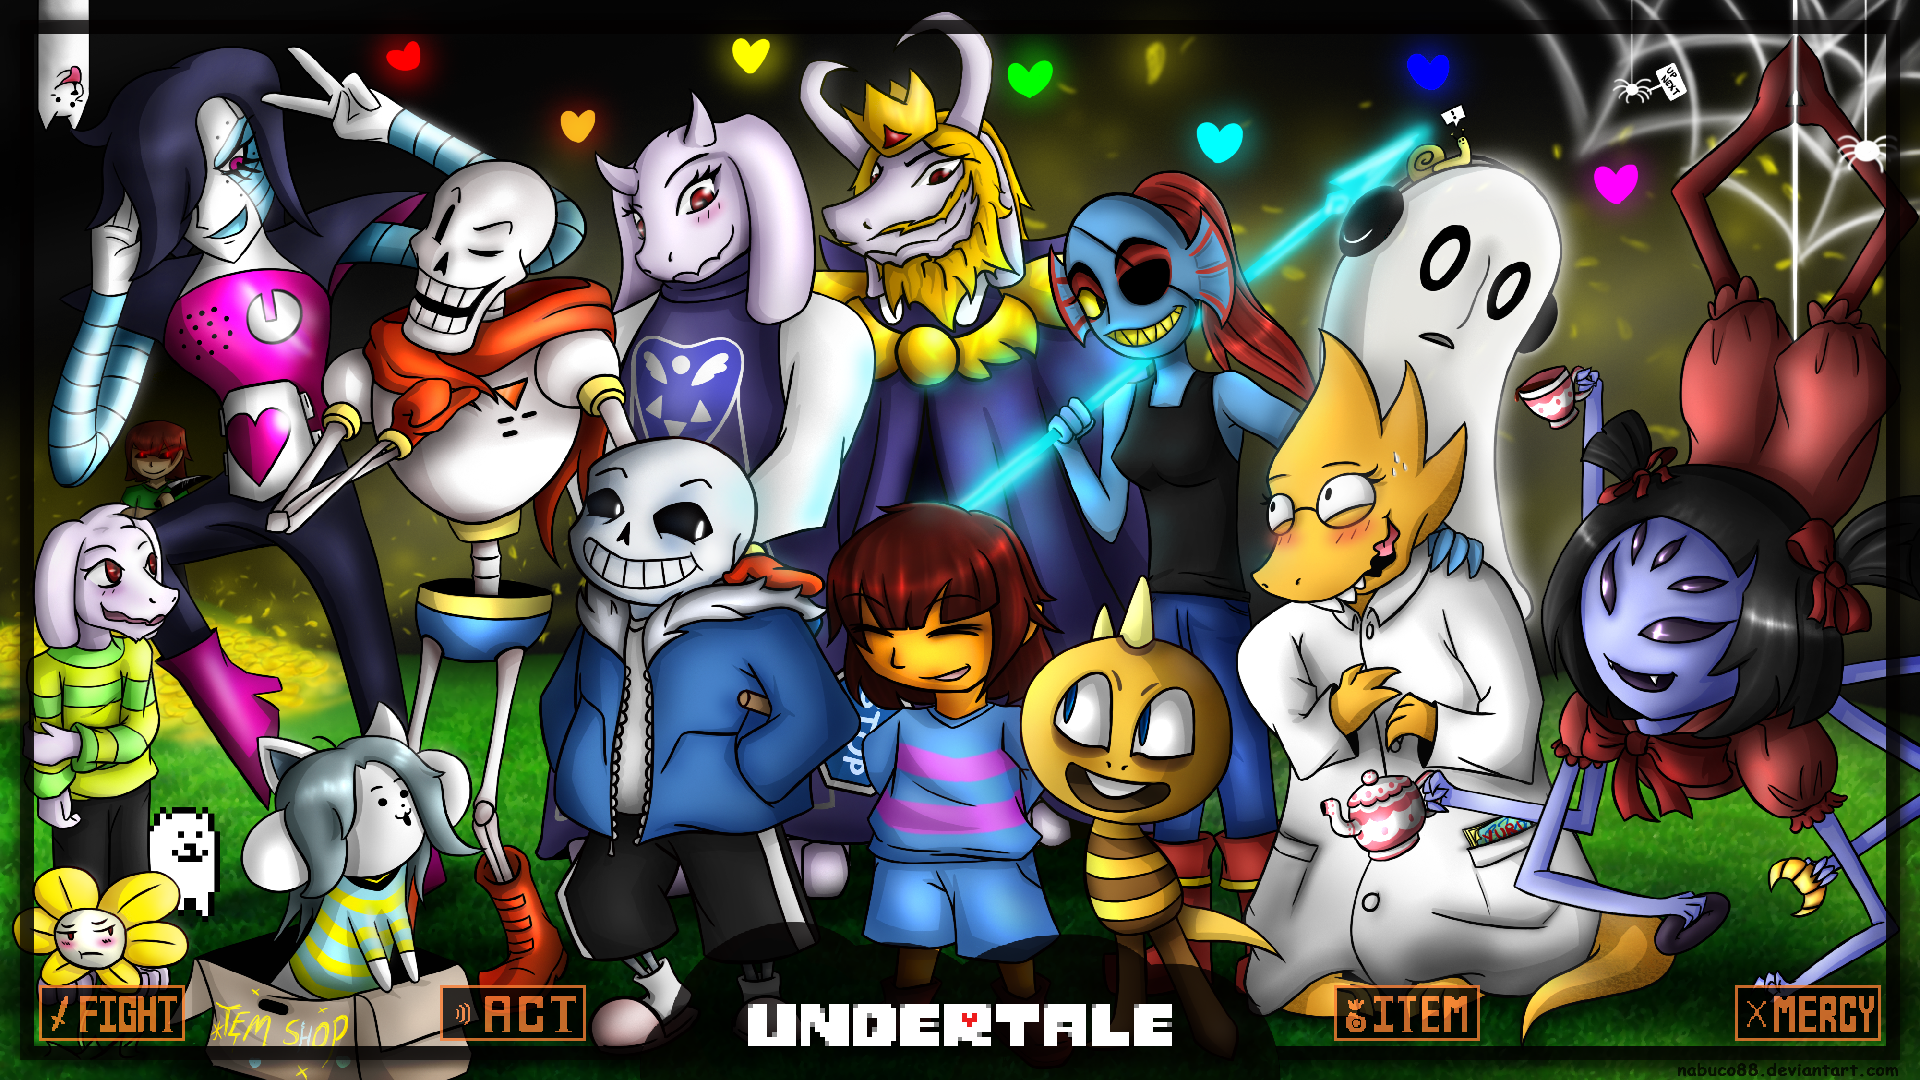 Undertale Cute Drawings Main Chartors Wd Undertale Wallpaper By Nabuco88 On Deviantart Undertale Undertale Cute Undertale Art